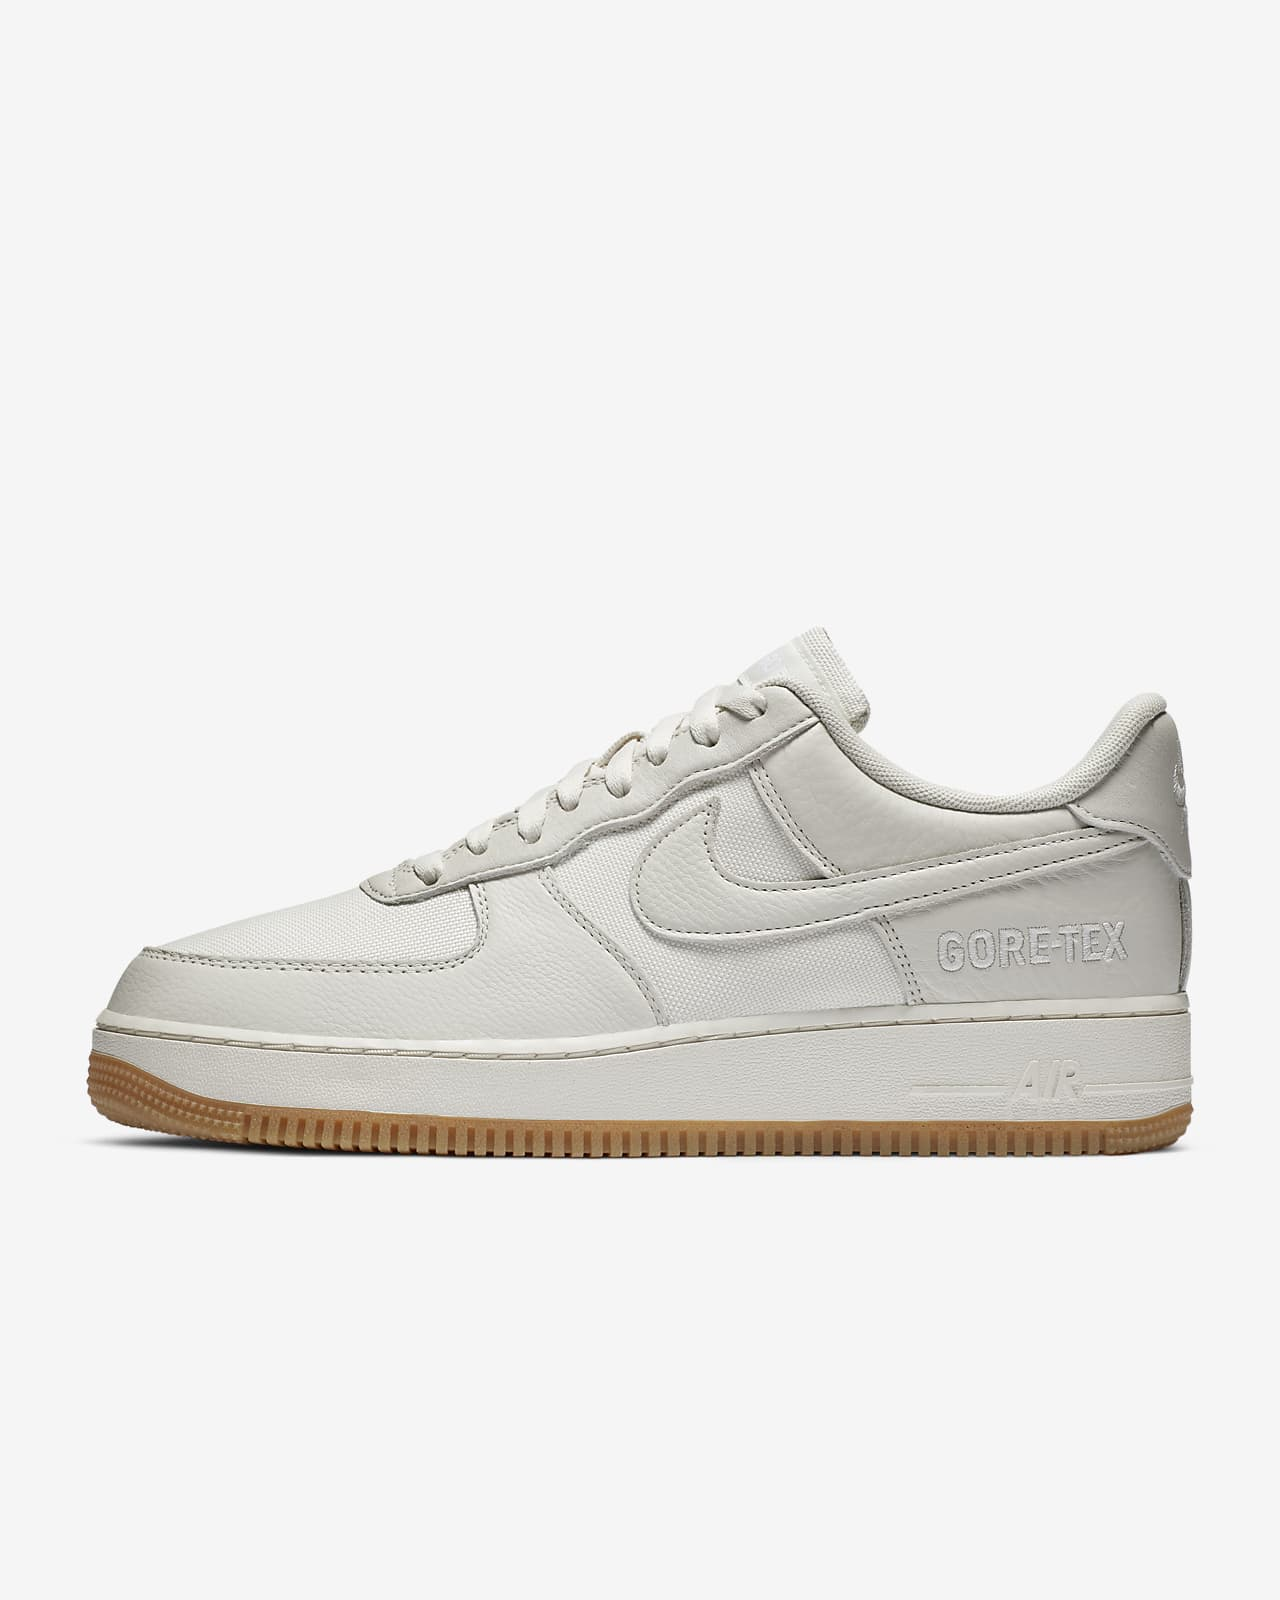 Nike Air Force 1 Low GORE-TEX Herrenschuh